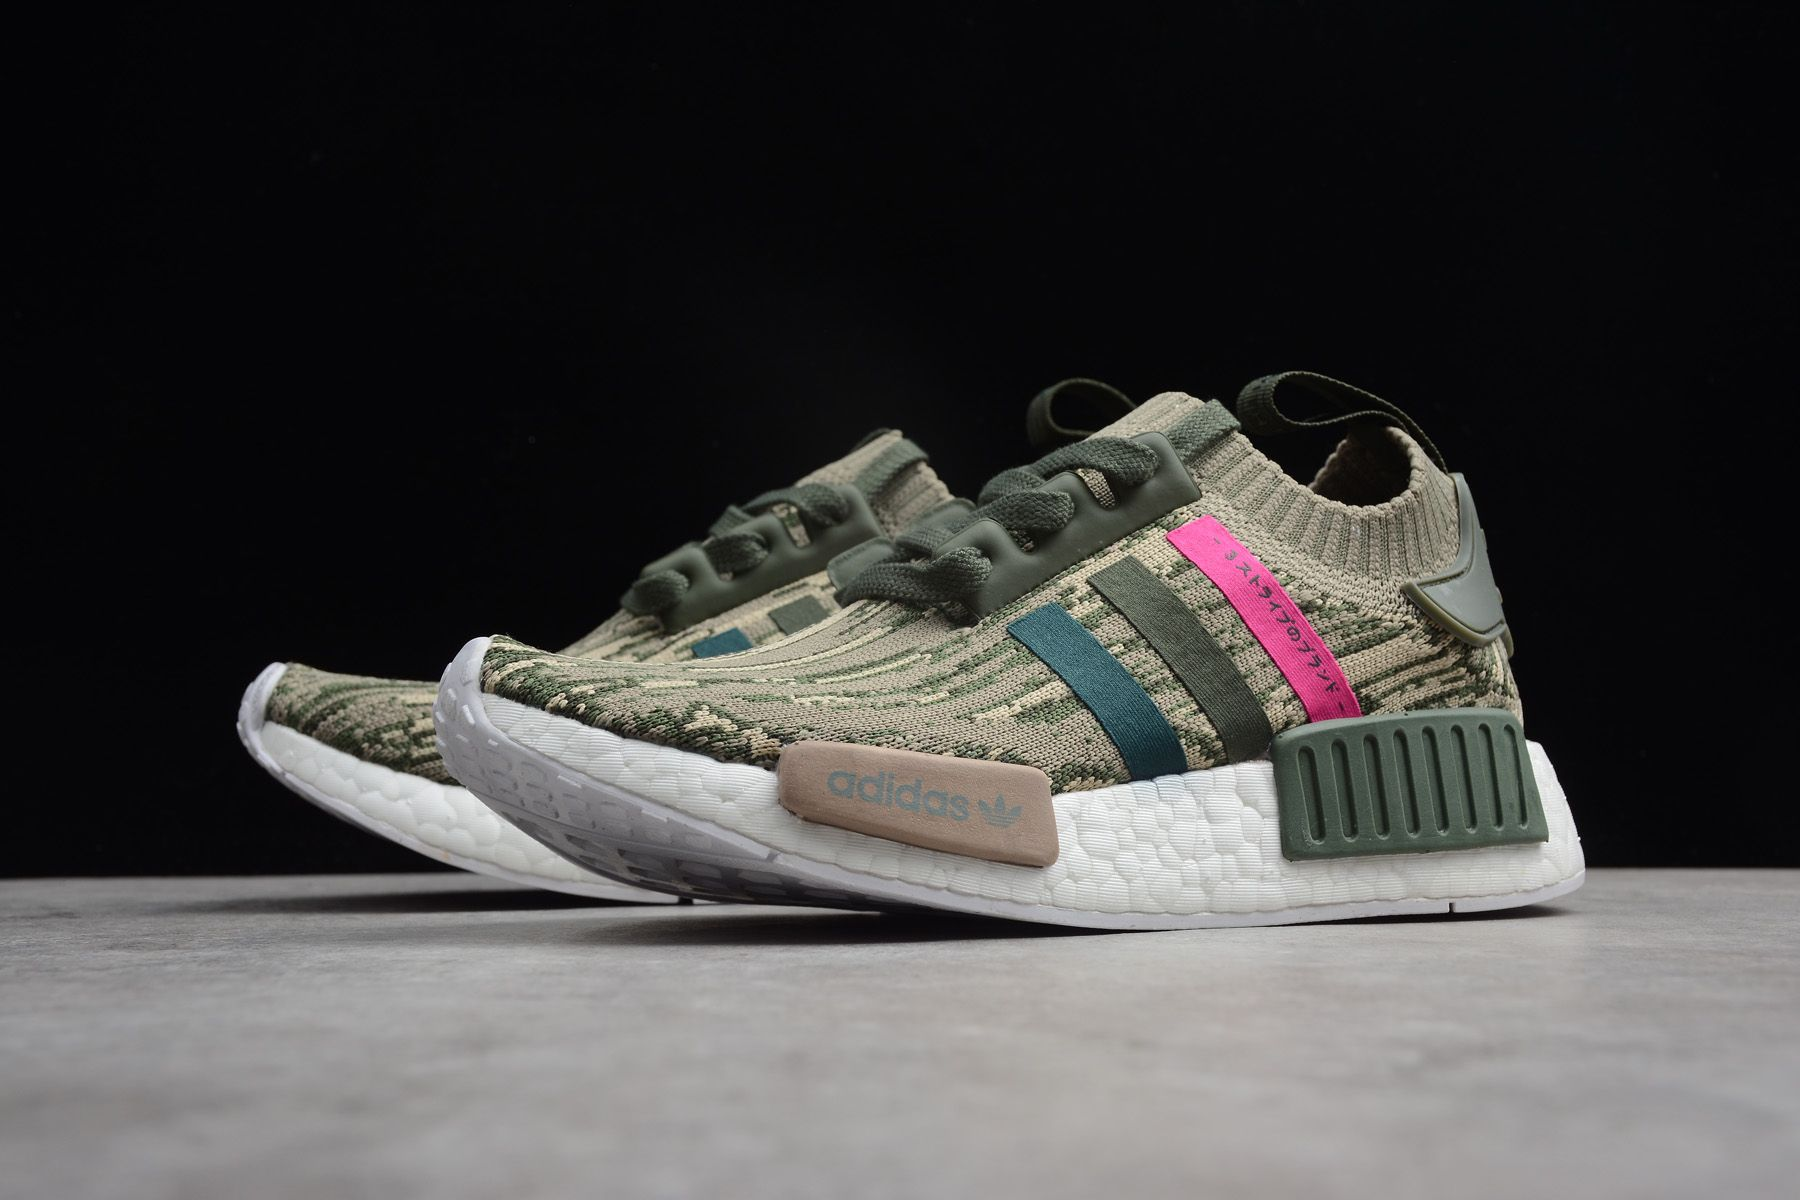 df9a733db adidas NMD R1 Primeknit Green Night Shock Pink BY9864 in 2019